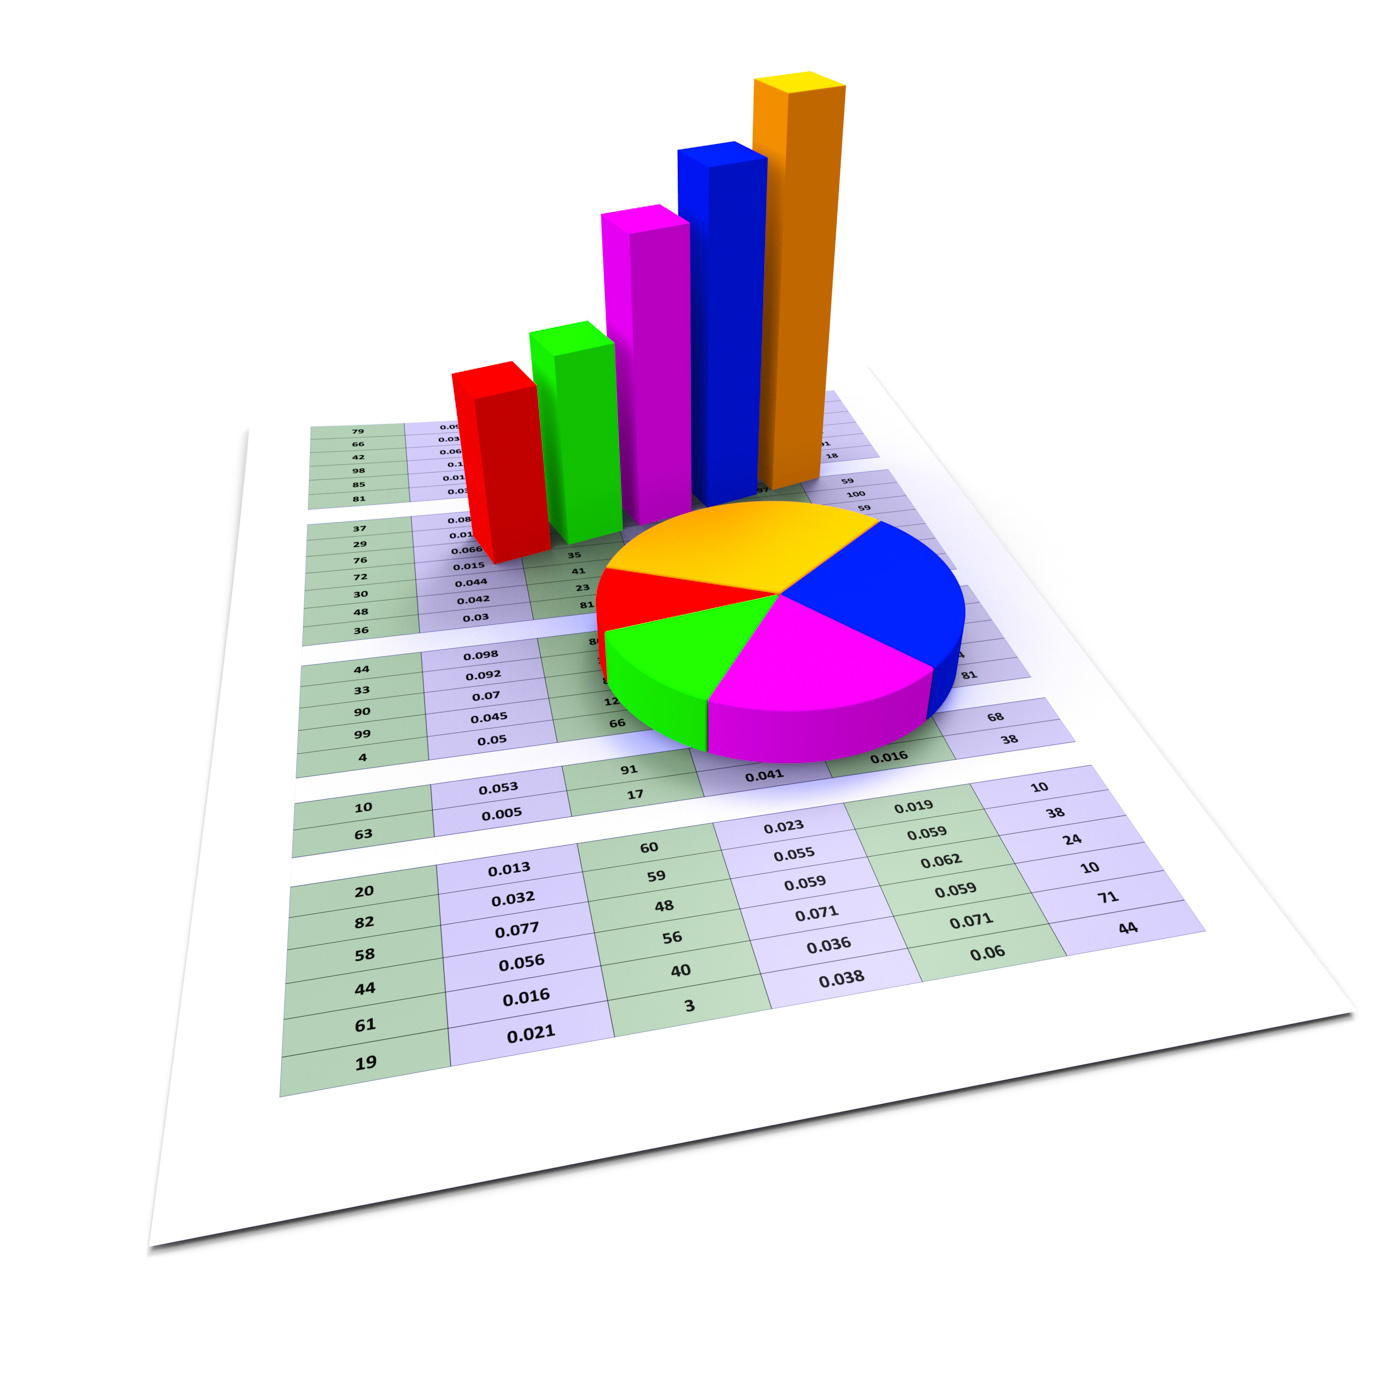 Pie chart shows business graph and charting photo